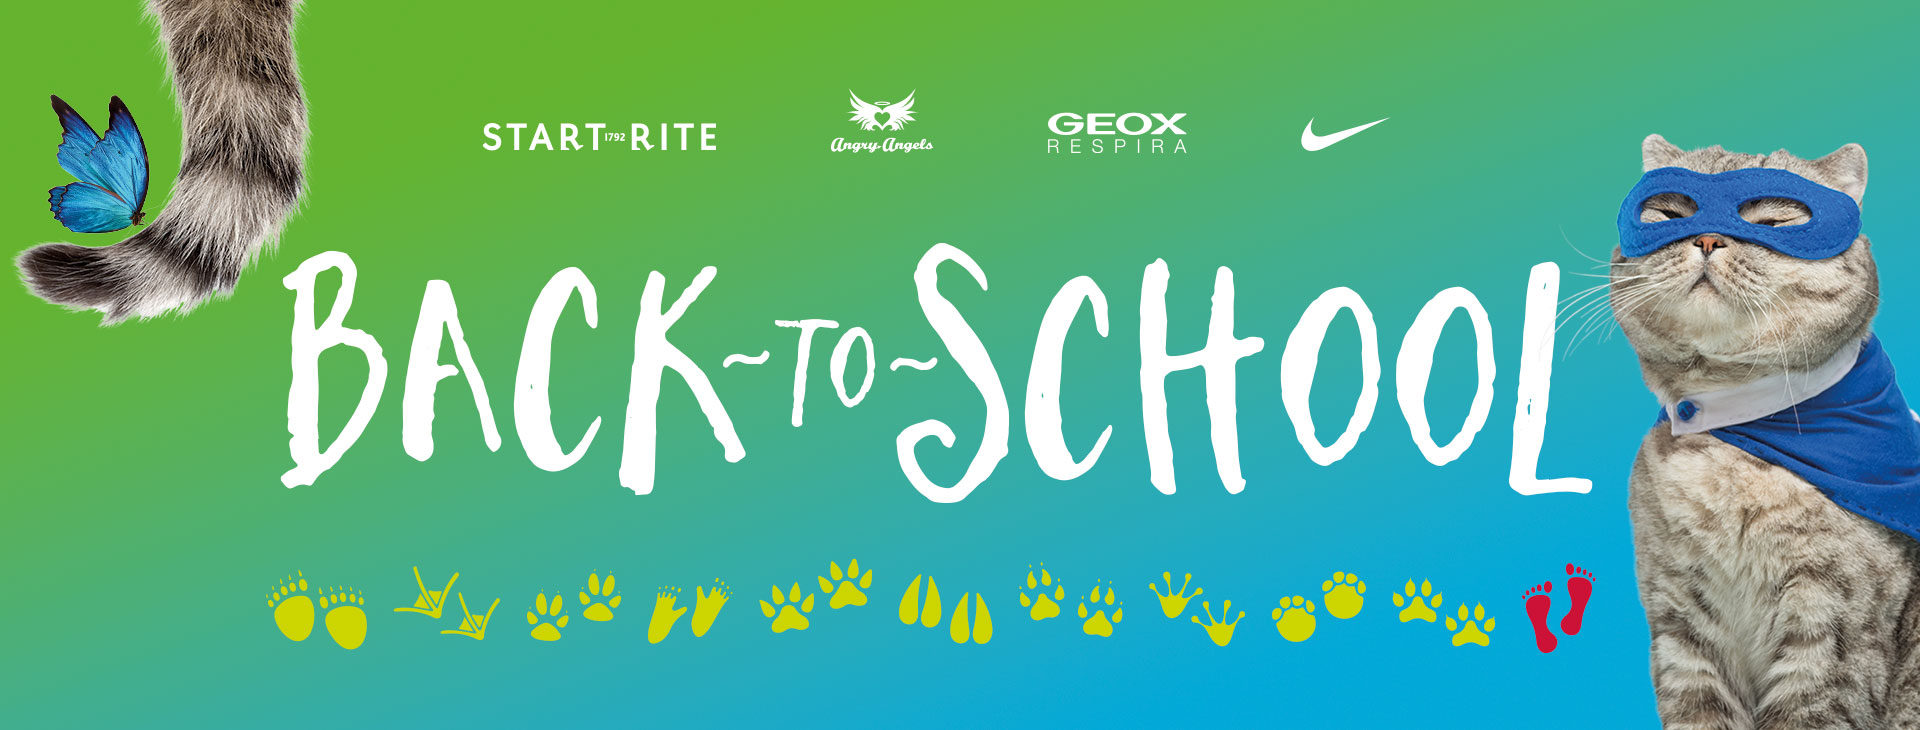 Back to school, shoe retail campaign graphics